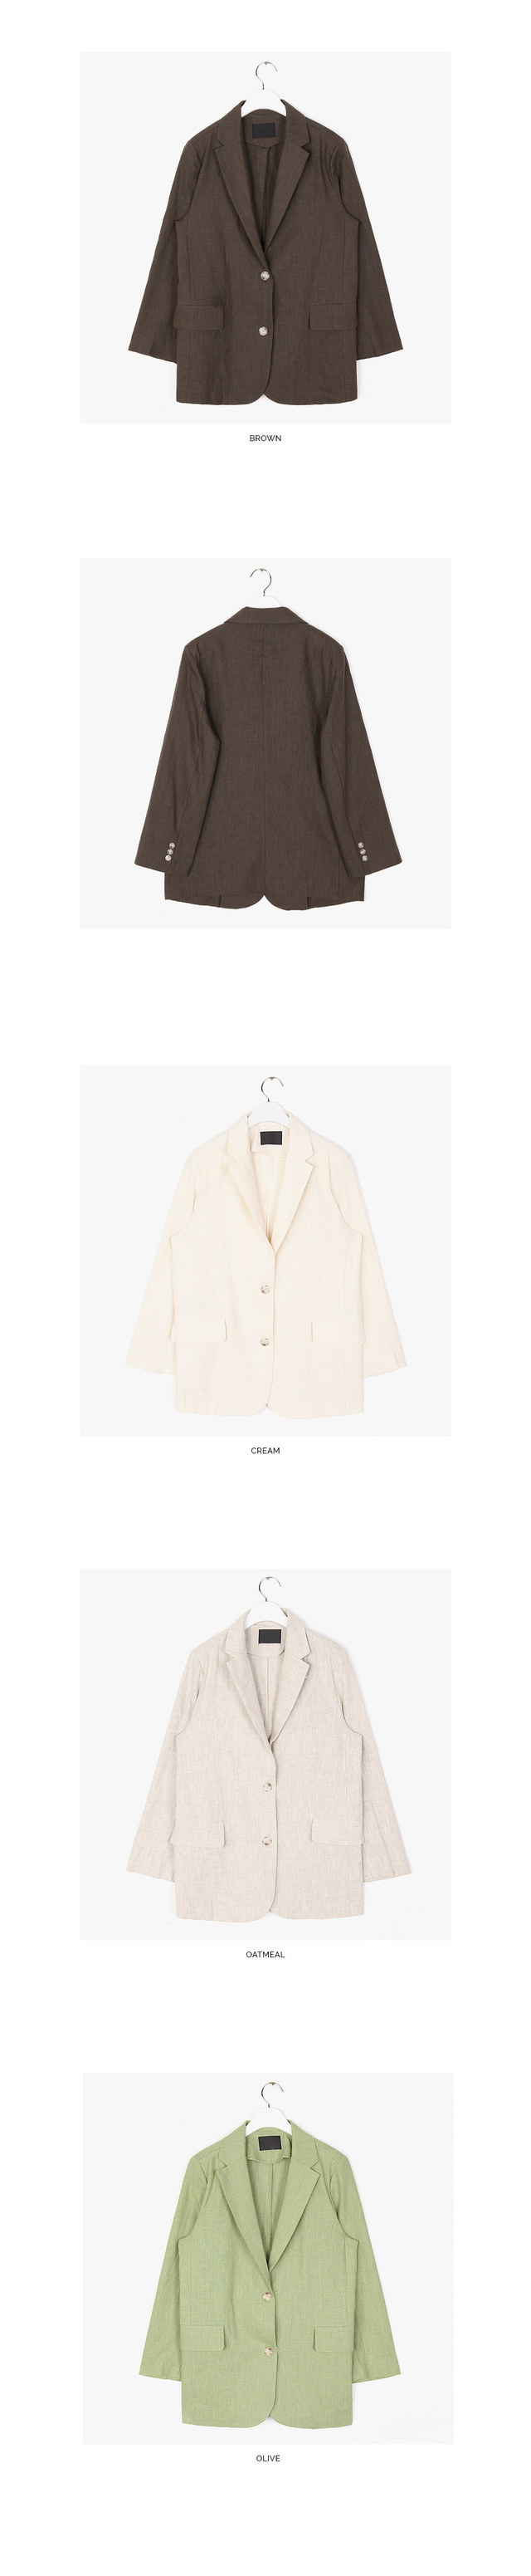 all day linen jacket